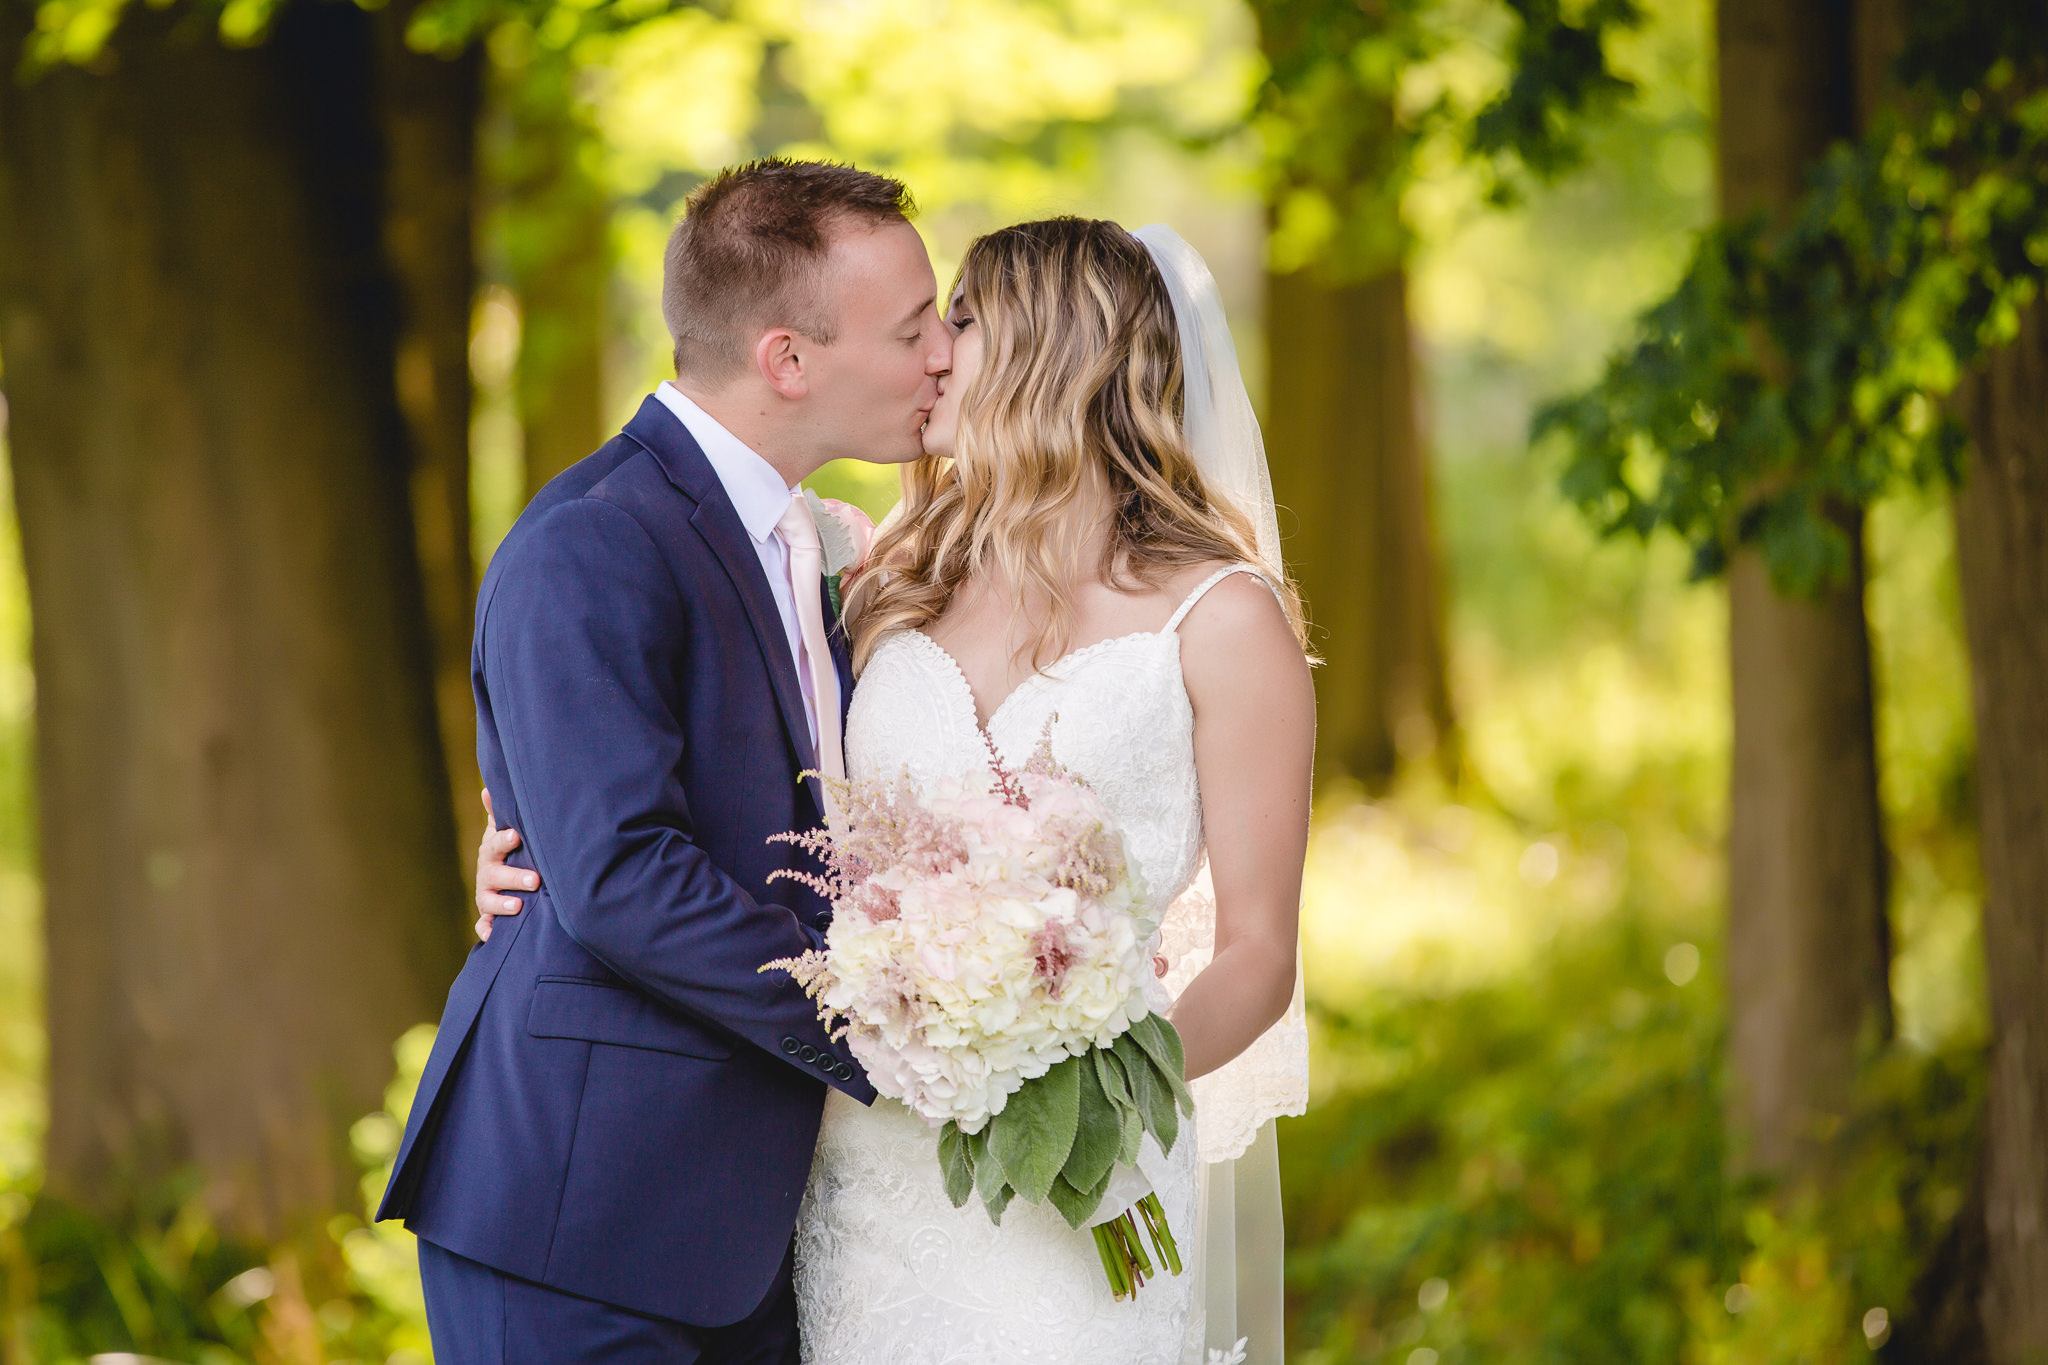 Newlyweds kiss during portraits in a wooded area at Hidden Valley Resort